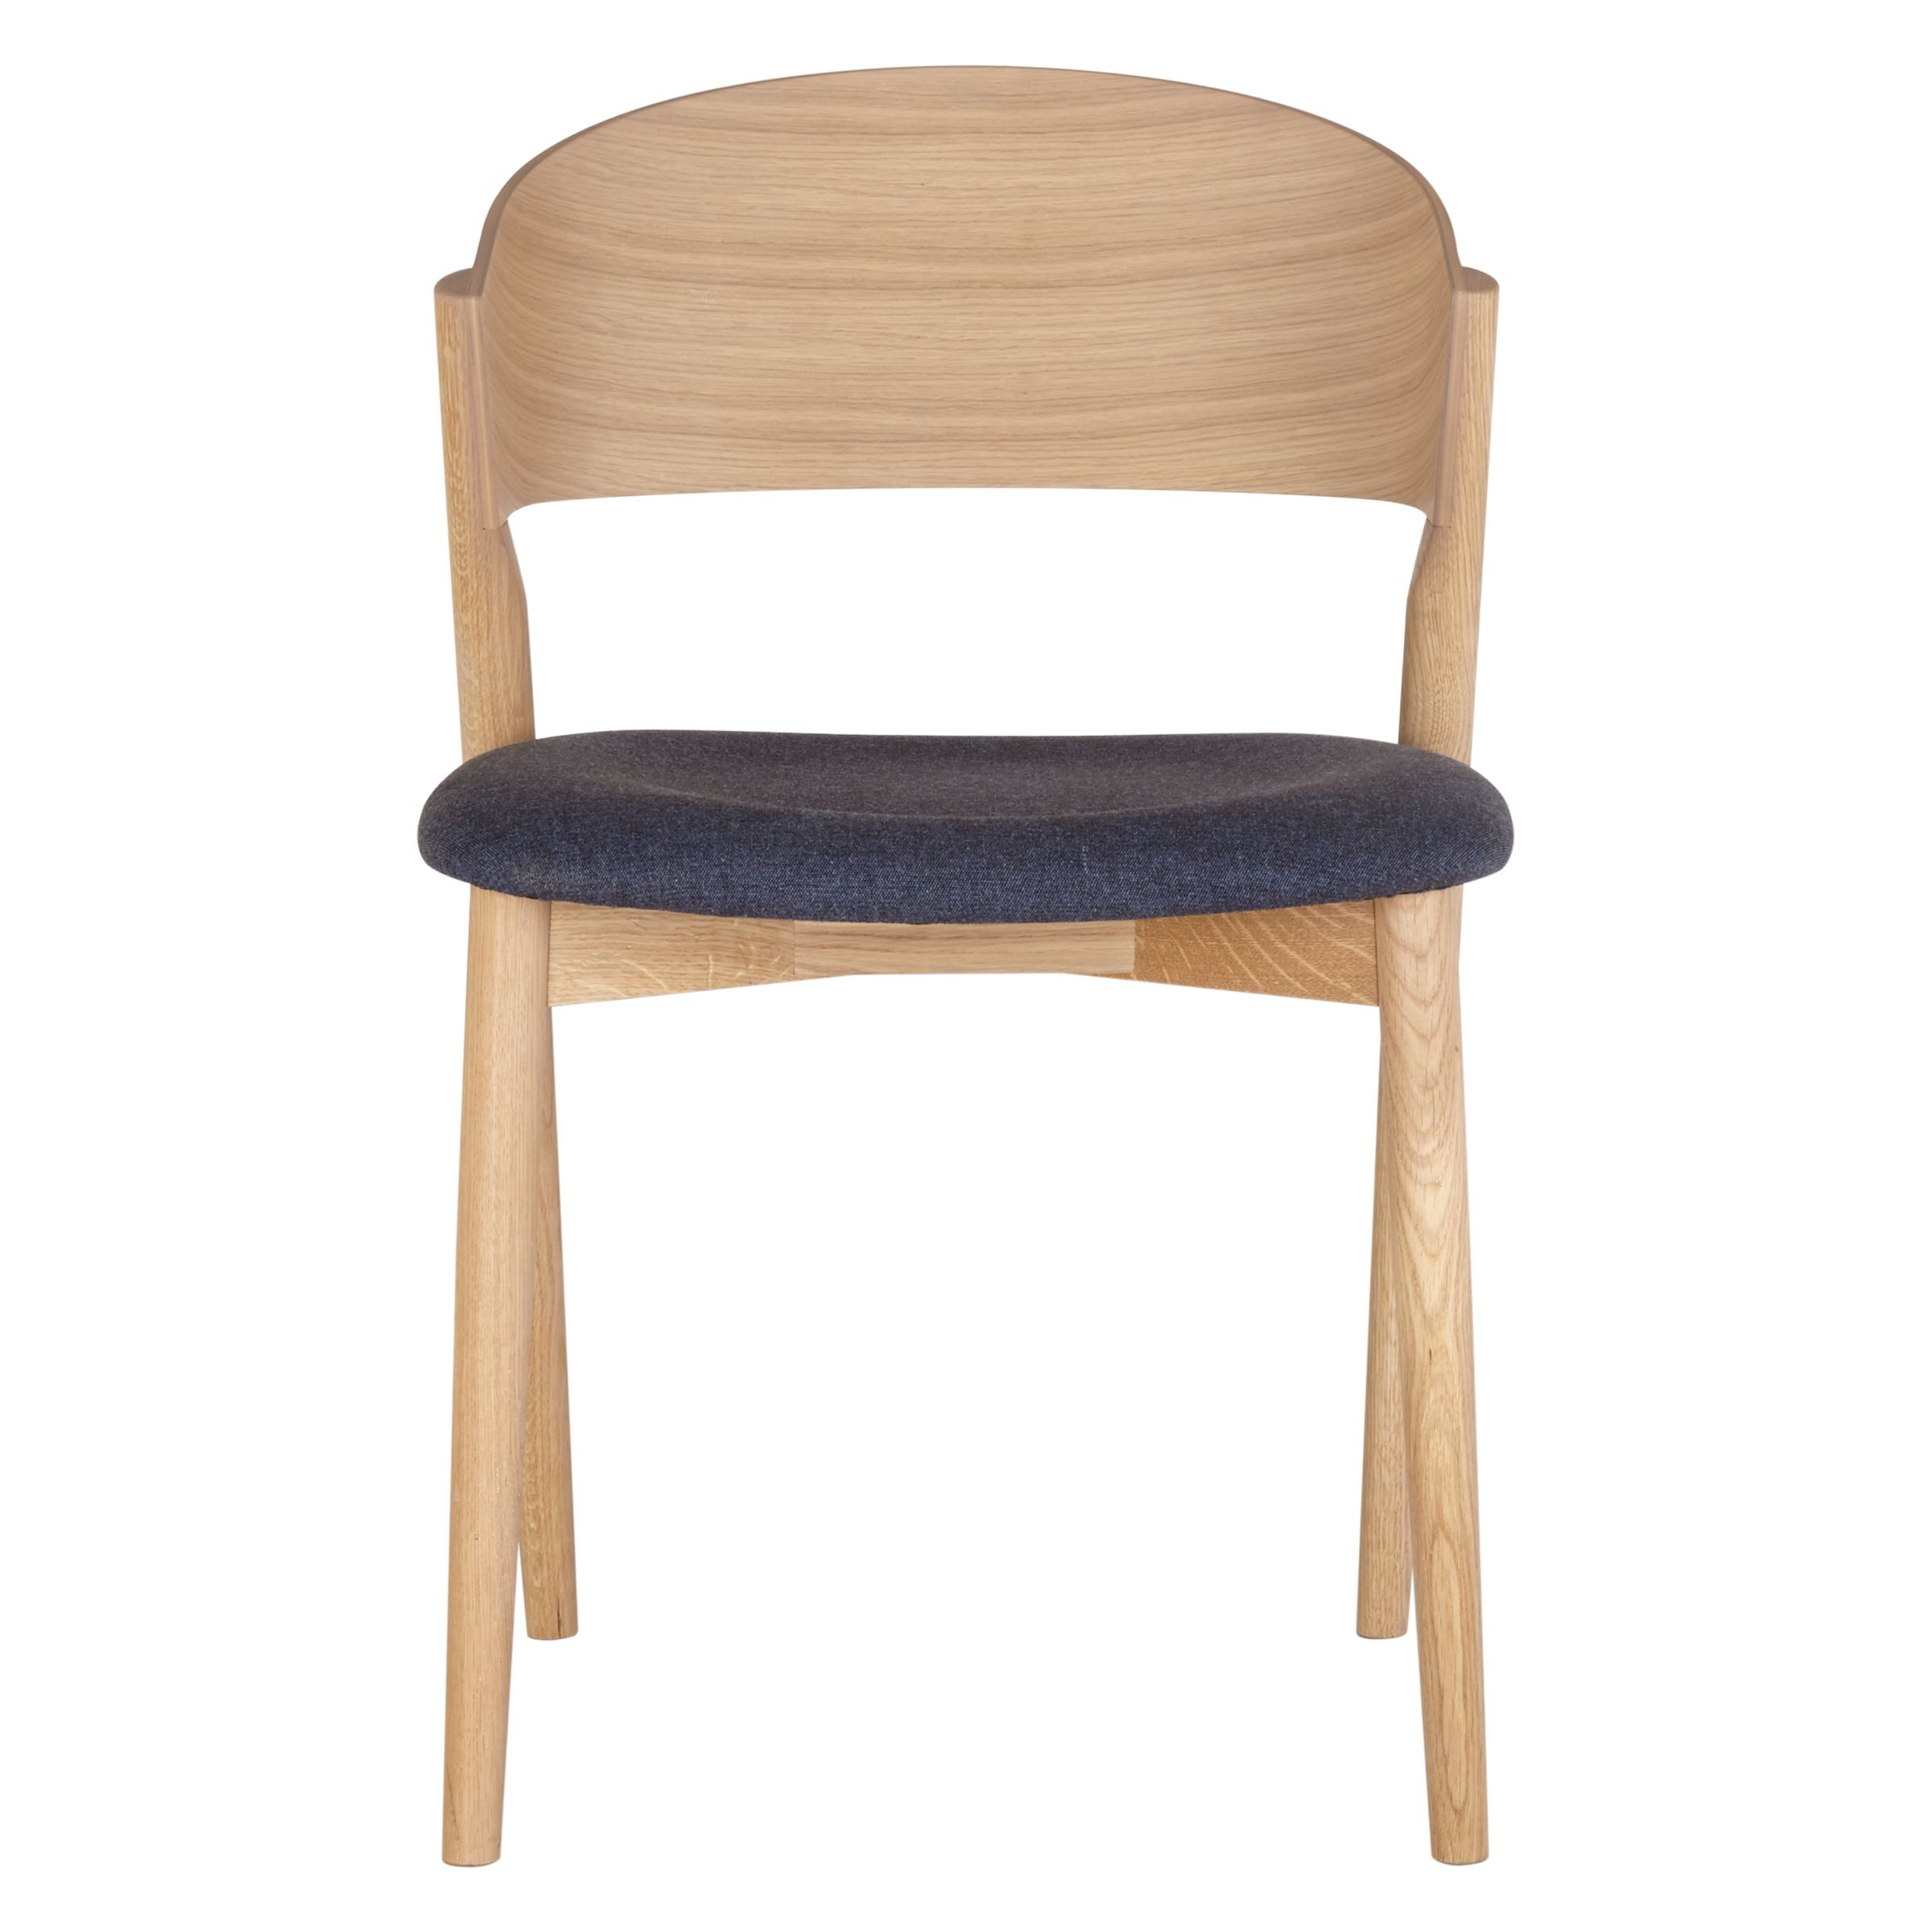 Seat Pads For Dining Chairs John Lewis. Seat Pads For Dining Chairs John Lewis. Home Design Ideas